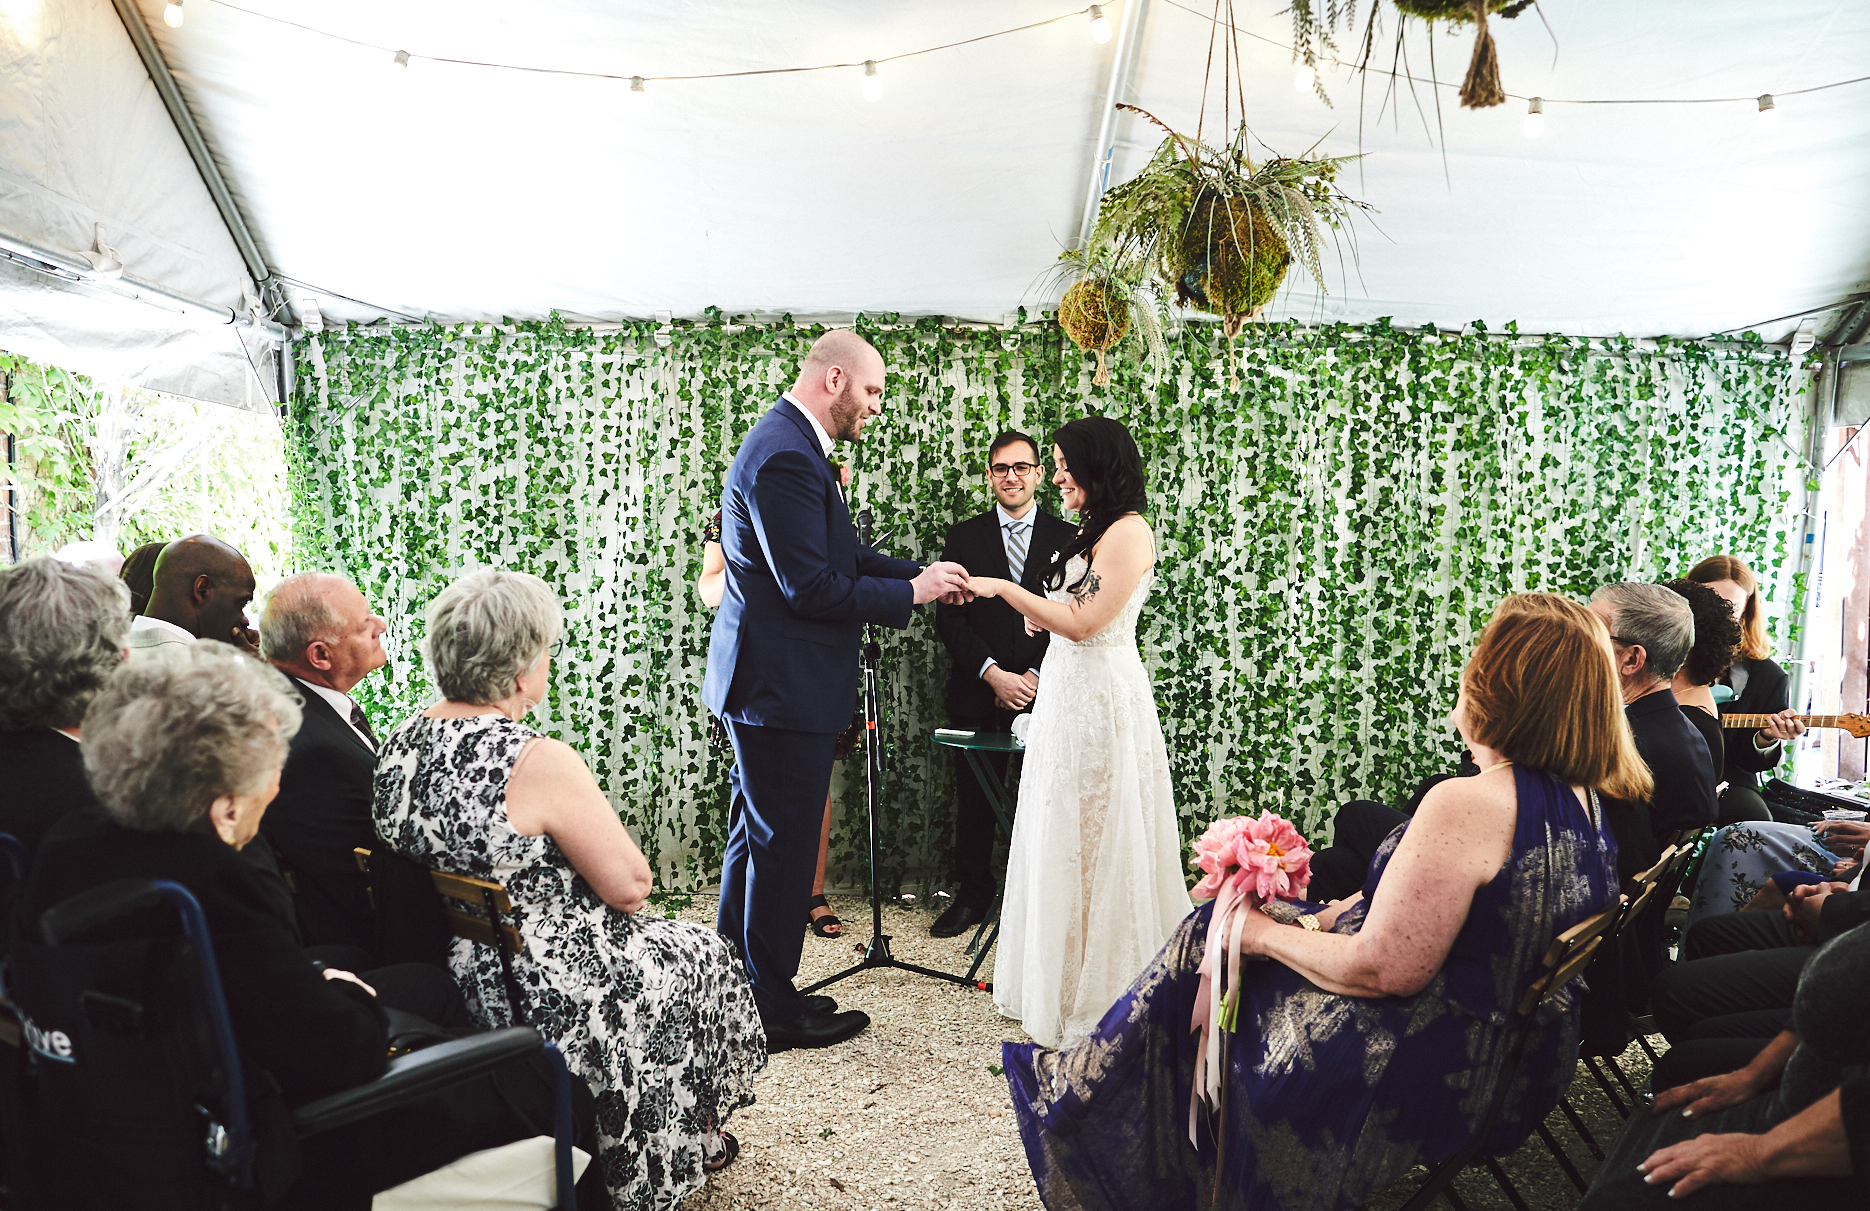 190518_SpringThreesBreweryWedding_By_BriJohnsonWeddings_0096.jpg